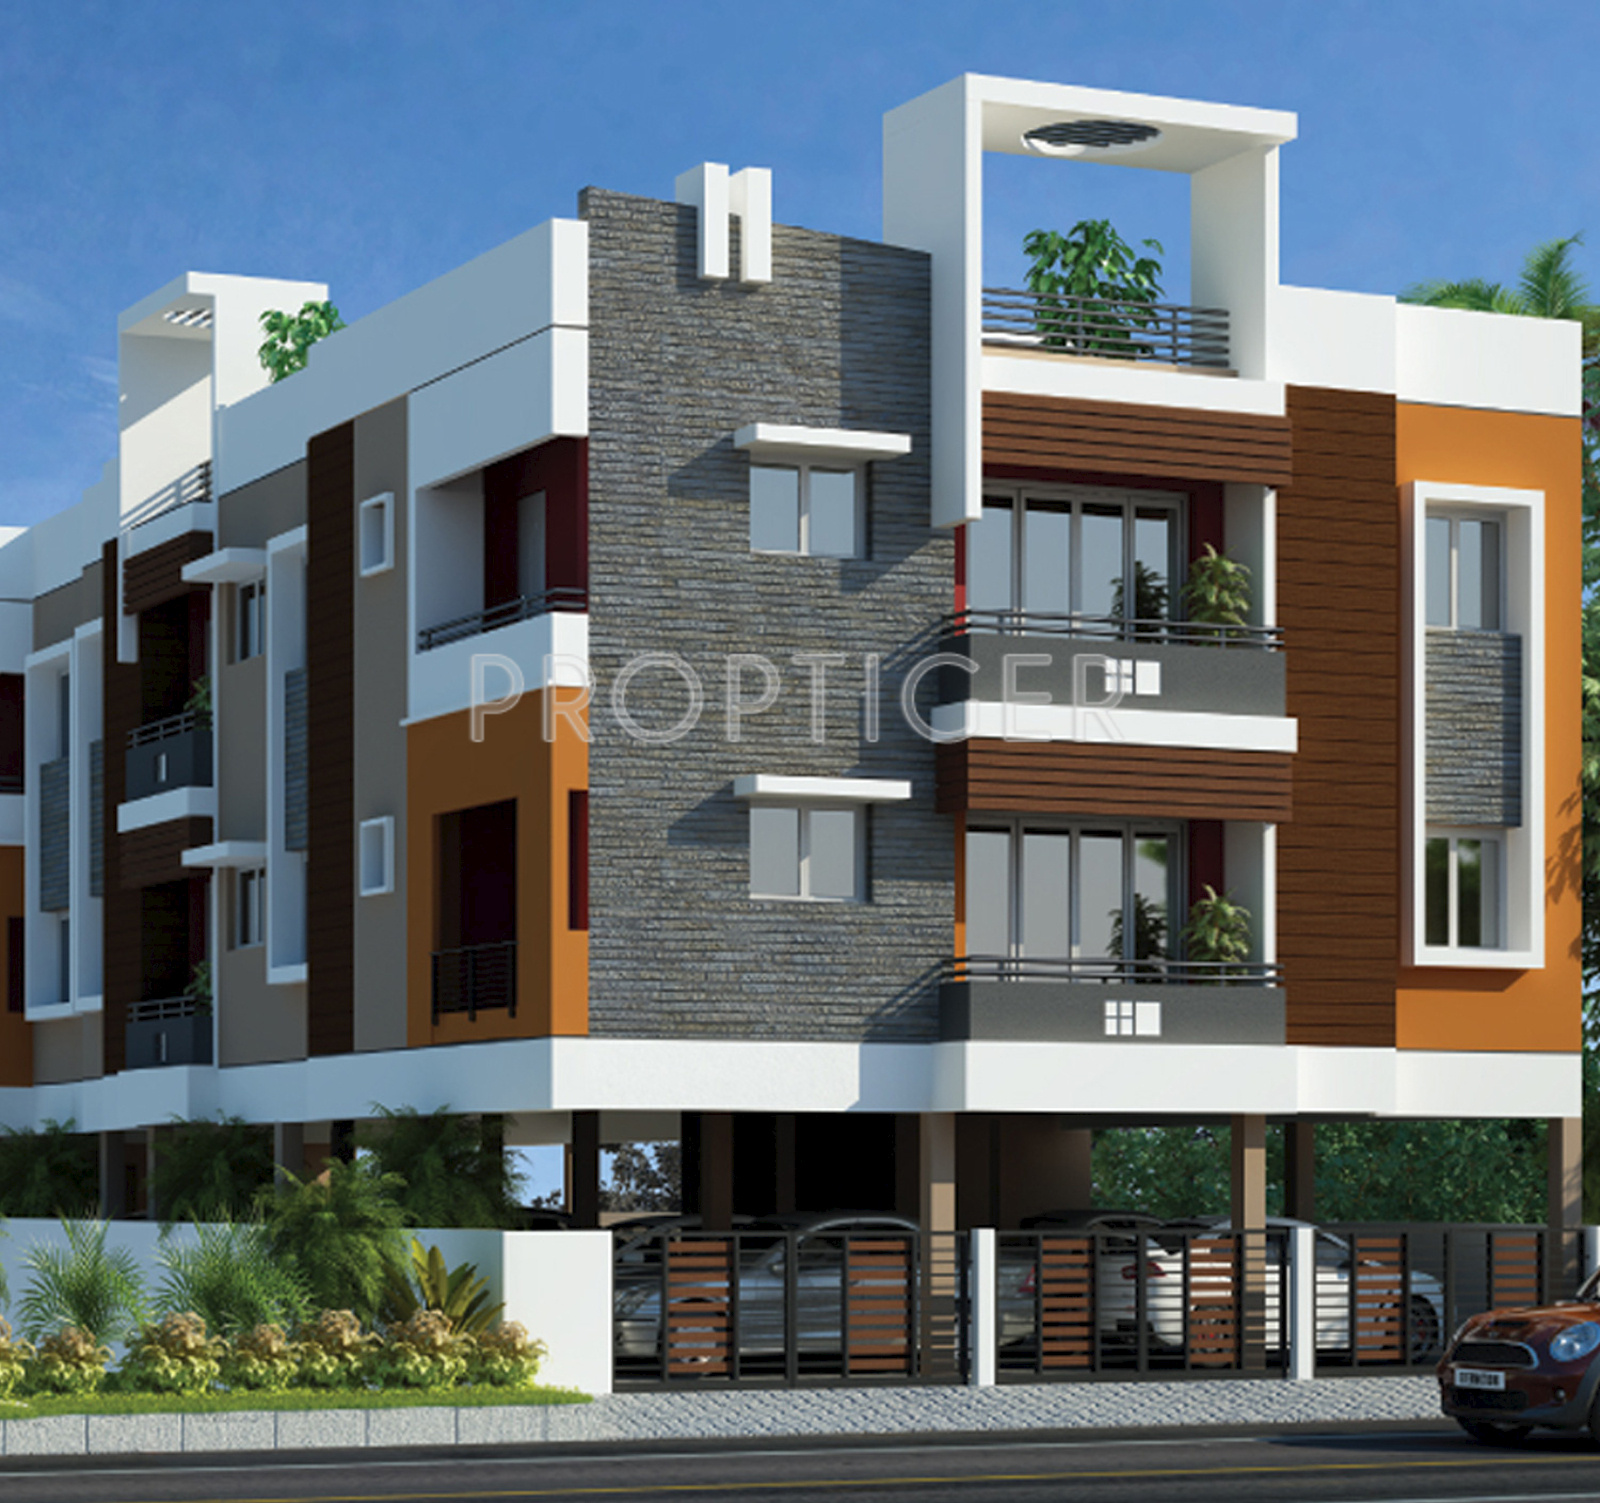 Front Elevation Designs For Schools : Sq ft bhk floor plan image ms charan mm rhythm